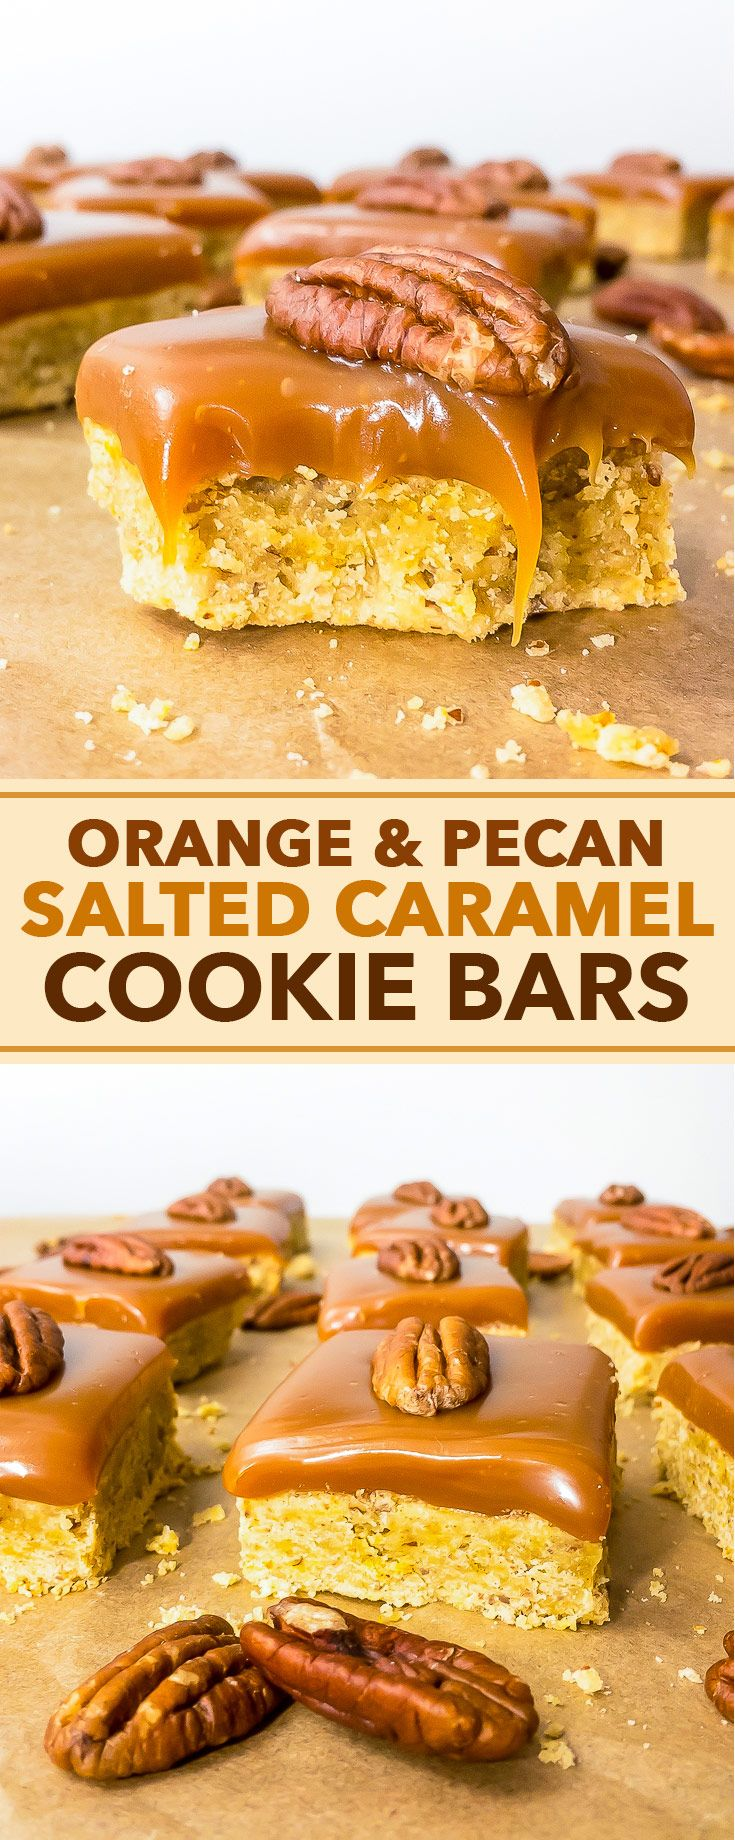 Orange and Pecan Salted Caramel Cookie Bars - Orange zest and pecans join forces in these amazing orange and pecan salted caramel cookie bars. This cookie bar recipe is incredibly simple and super easy to follow. From the melt-in-the-mouth salted caramel sauce layer, to the buttery, crumbly pecan cookie base with bursts of aromatic orange zest – every single bite of this delightful dessert will blow your mind!